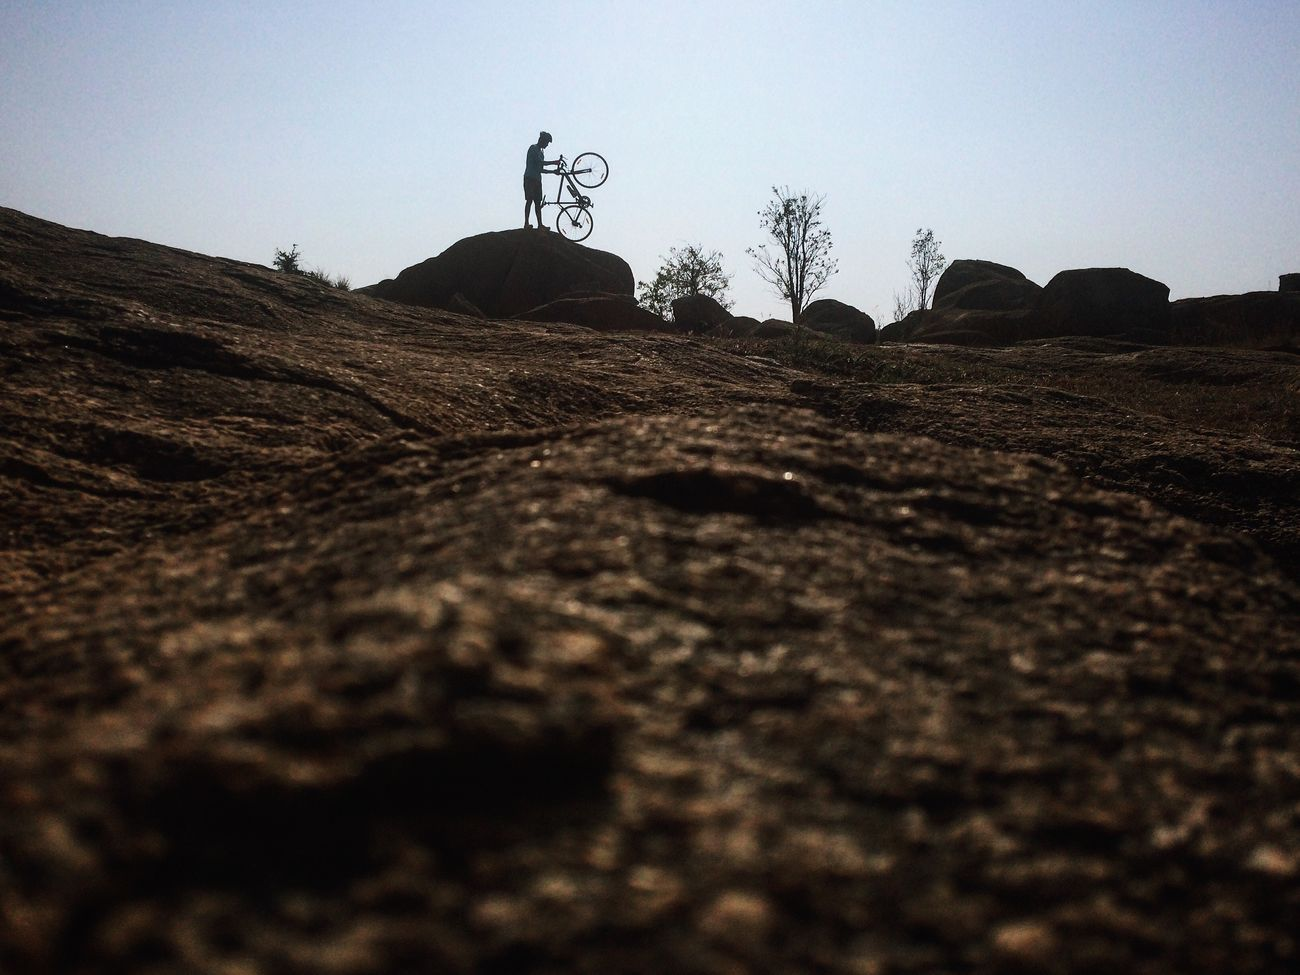 #Cycling #cyclingtrips Adventure Adventure Time Cyclelove Enjoythelittlethings Joinmyjourney Low Angle View Moretoexplore Mountain Mountain View Nature Photography Photooftheday First Eyeem Photo